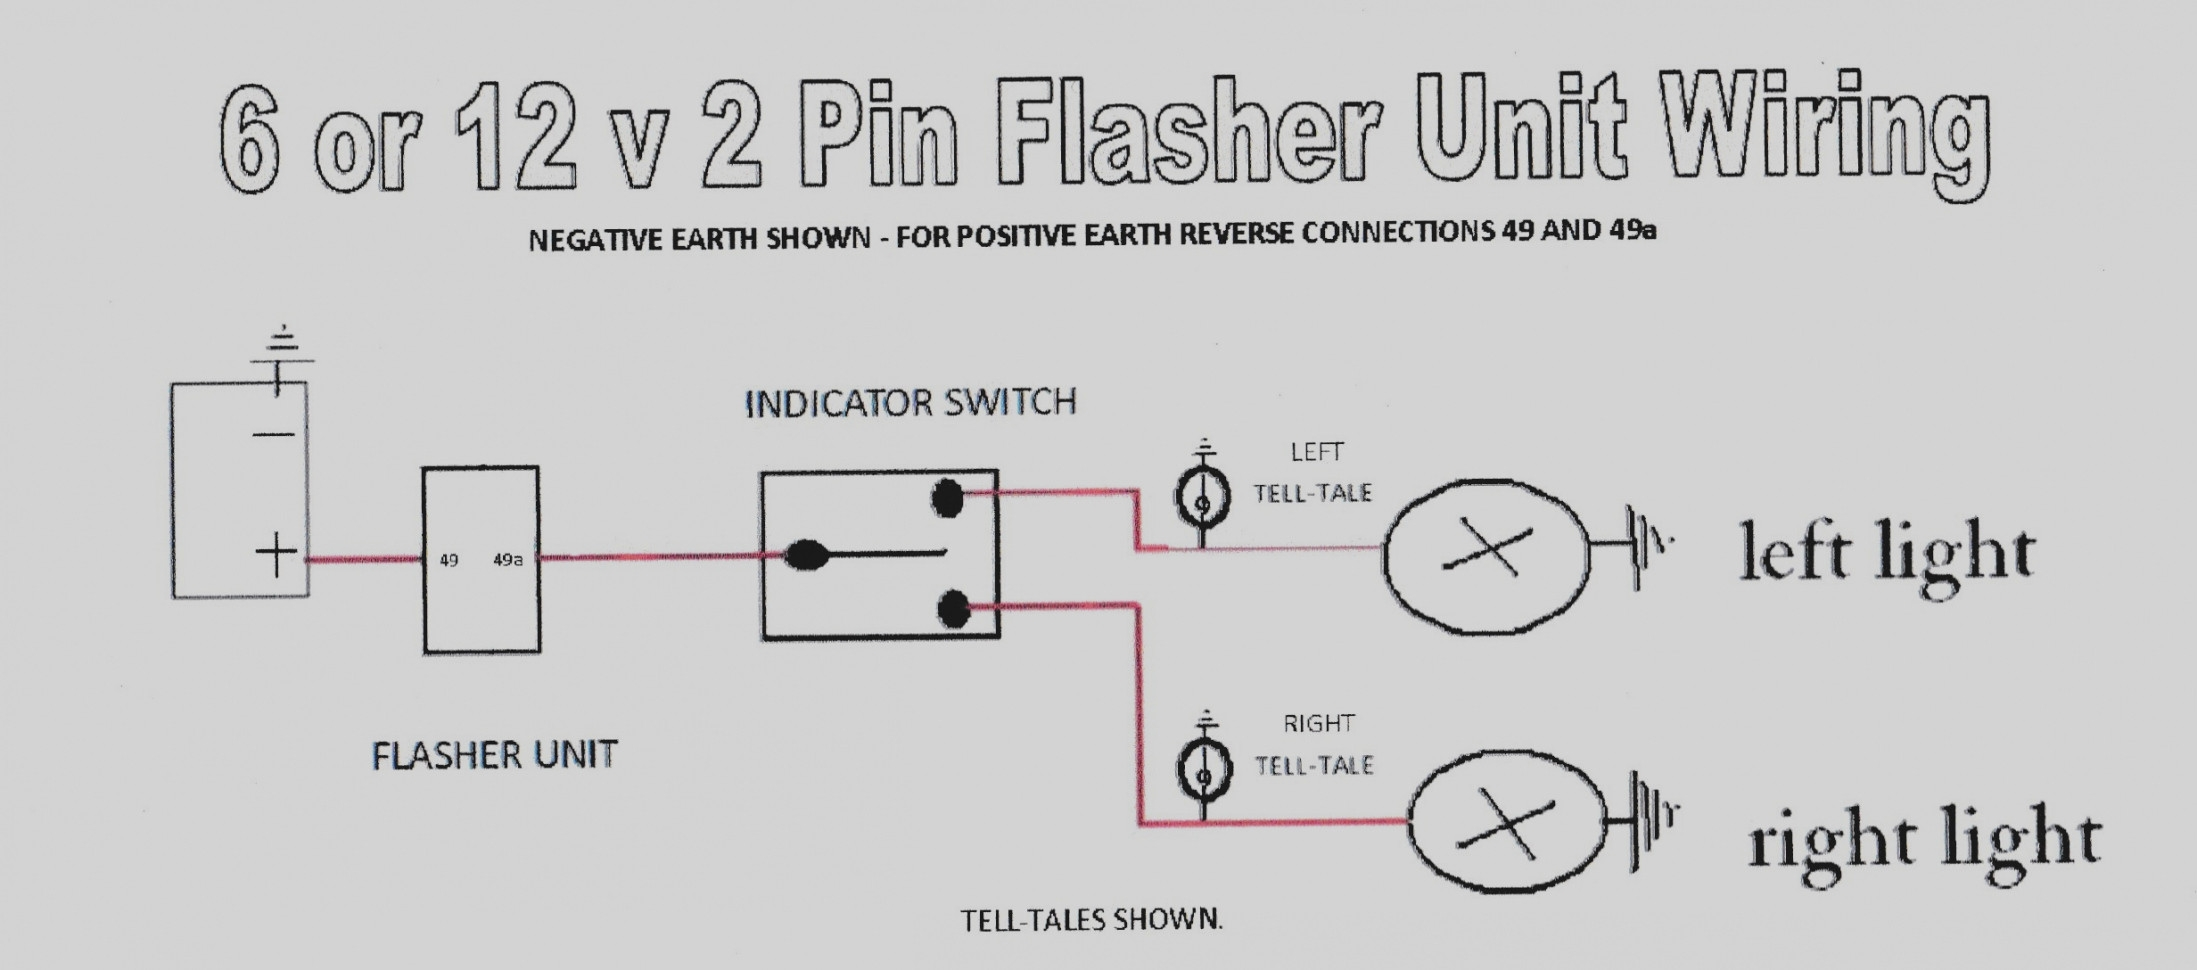 idec rh2b ul wiring diagram Collection-ul924 relay wiring diagram valid fancy 4 pin relay wiring diagram rh ipphil idec rh2b ul wiring diagram idec rh2b ul wiring diagram 19-b